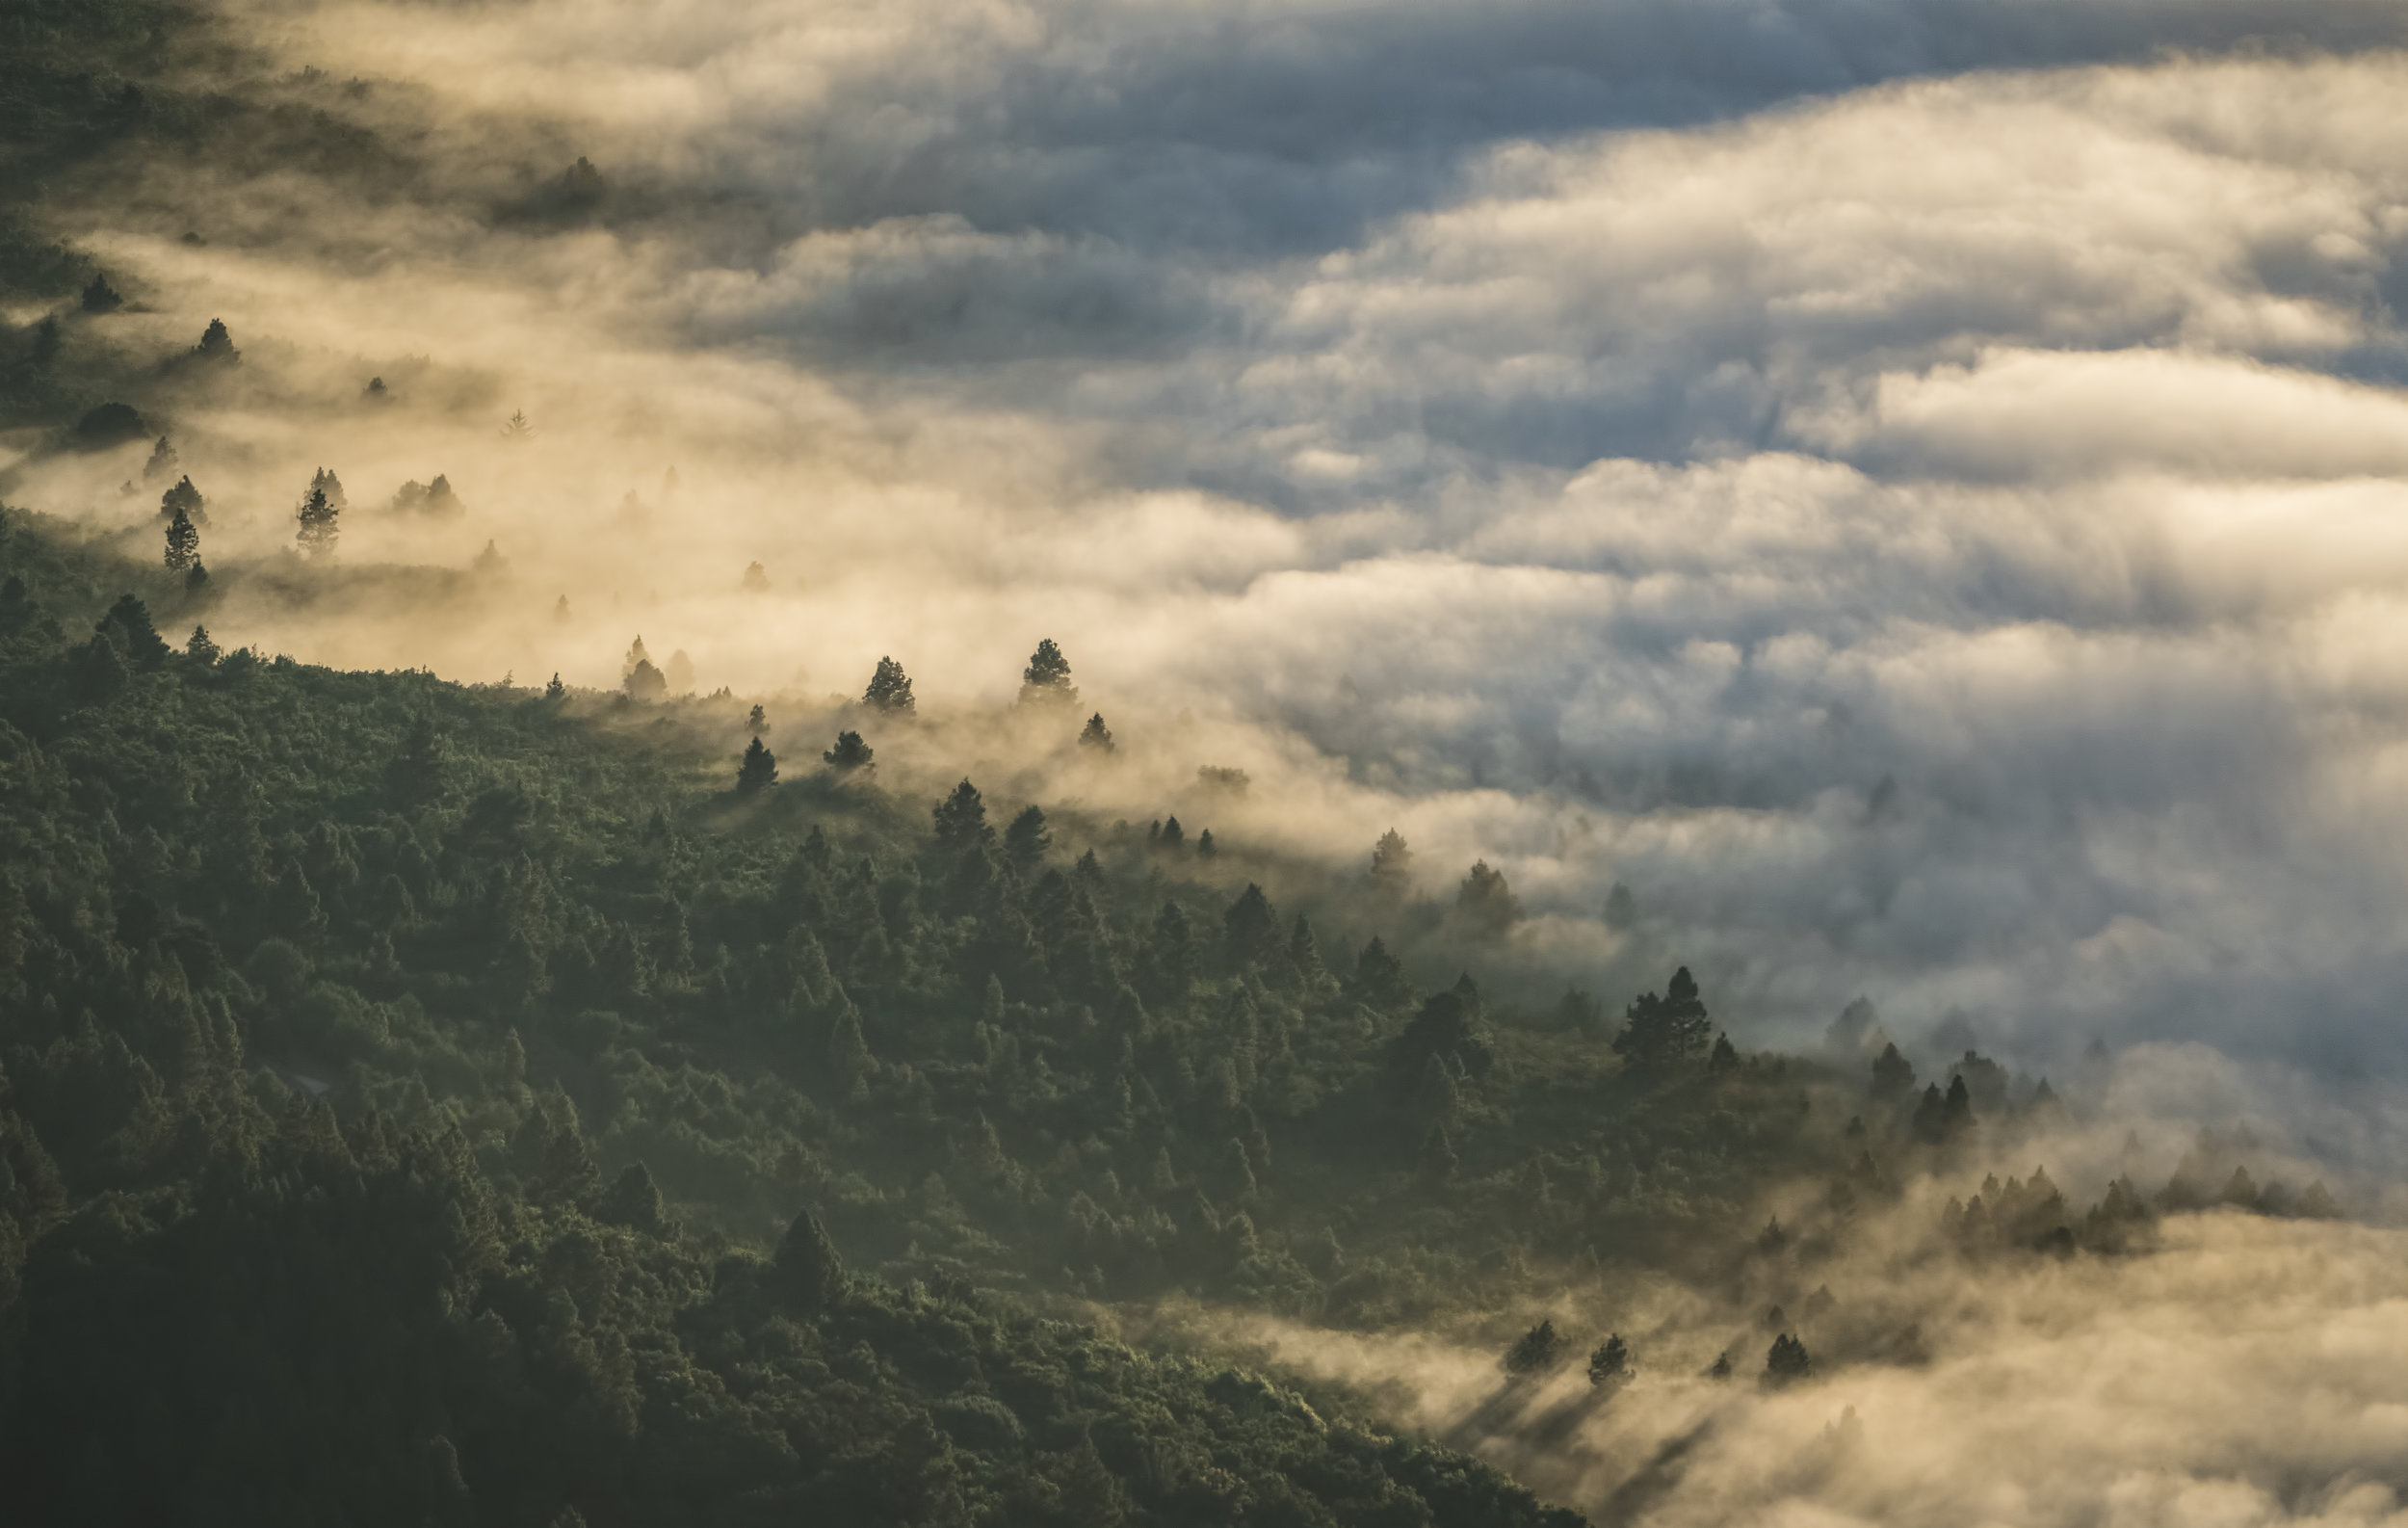 Misty clouds floating over evergreen trees